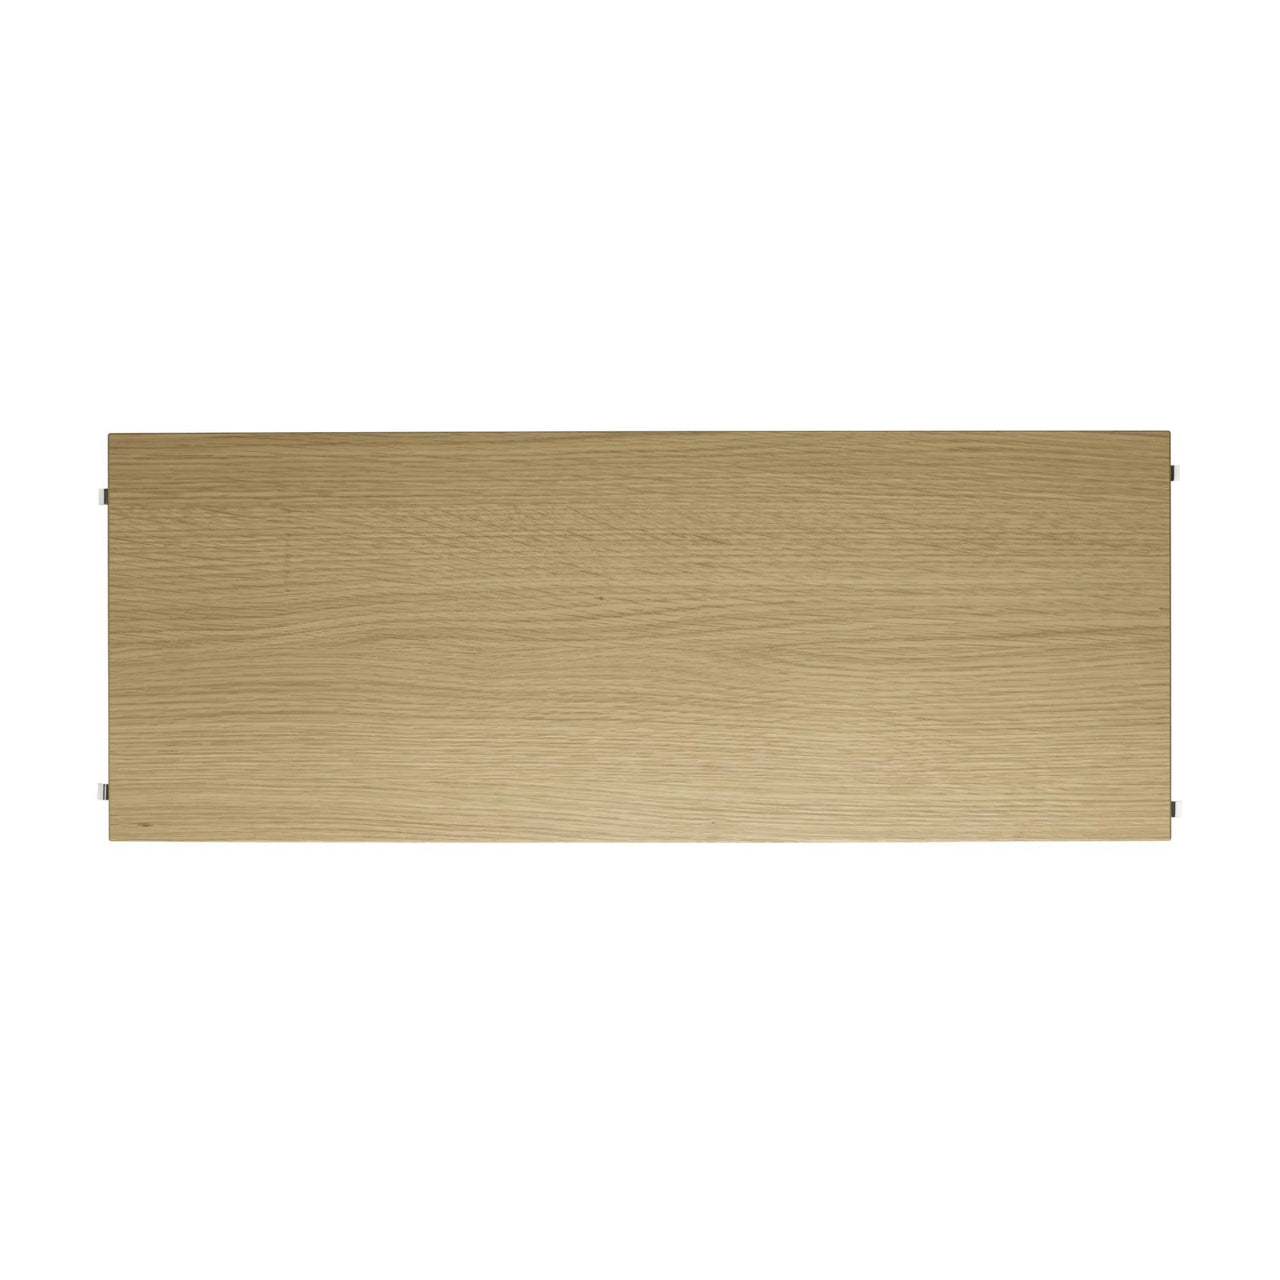 String Shelves (3-Pack): 78 x 30 cm + Oak